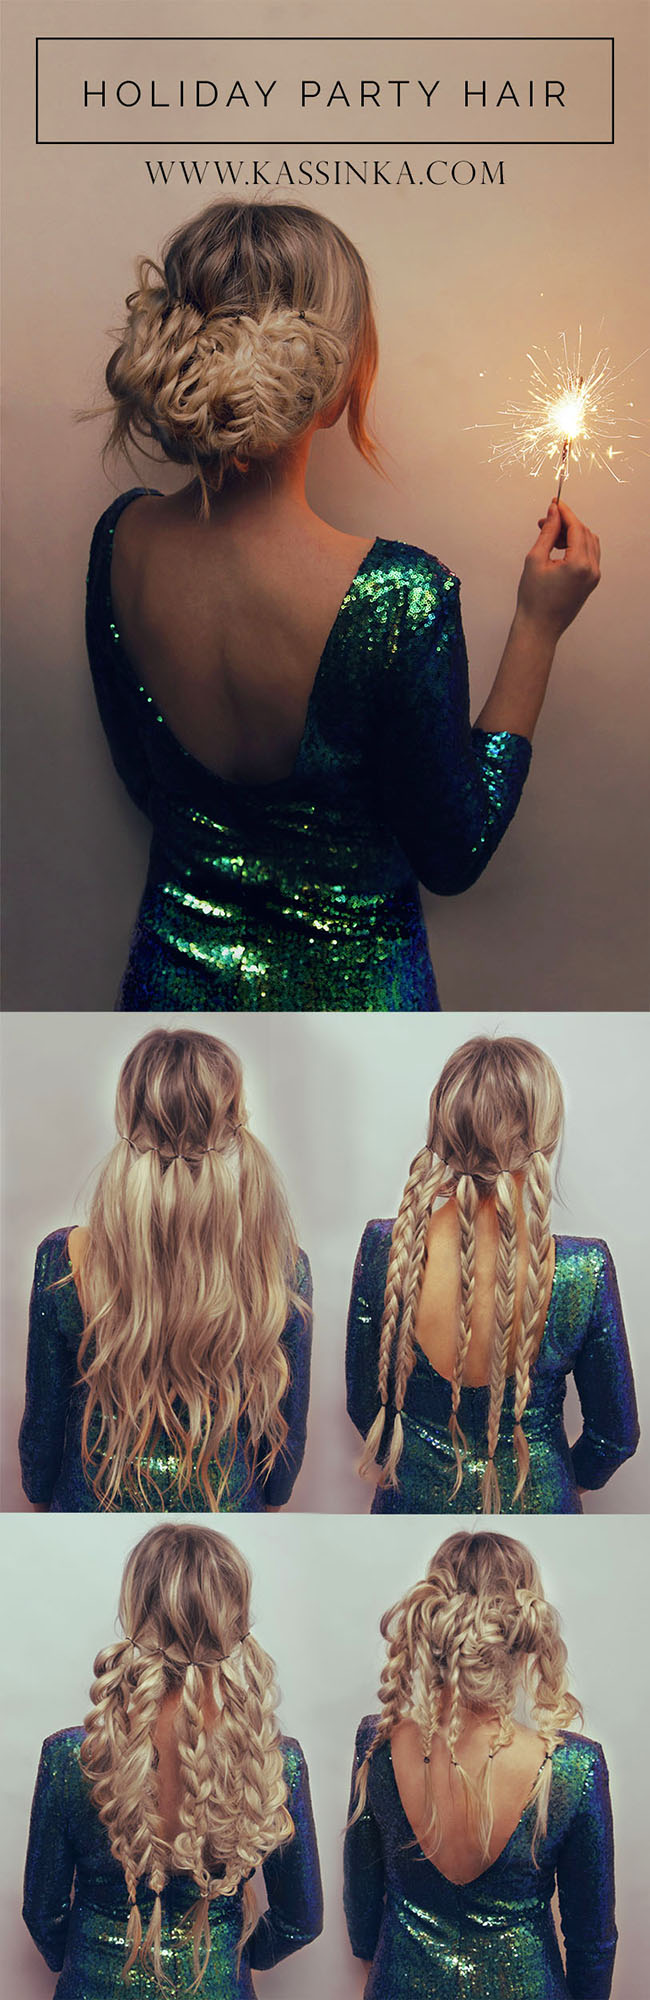 Kassinka Holiday Pary Hair Tutorial